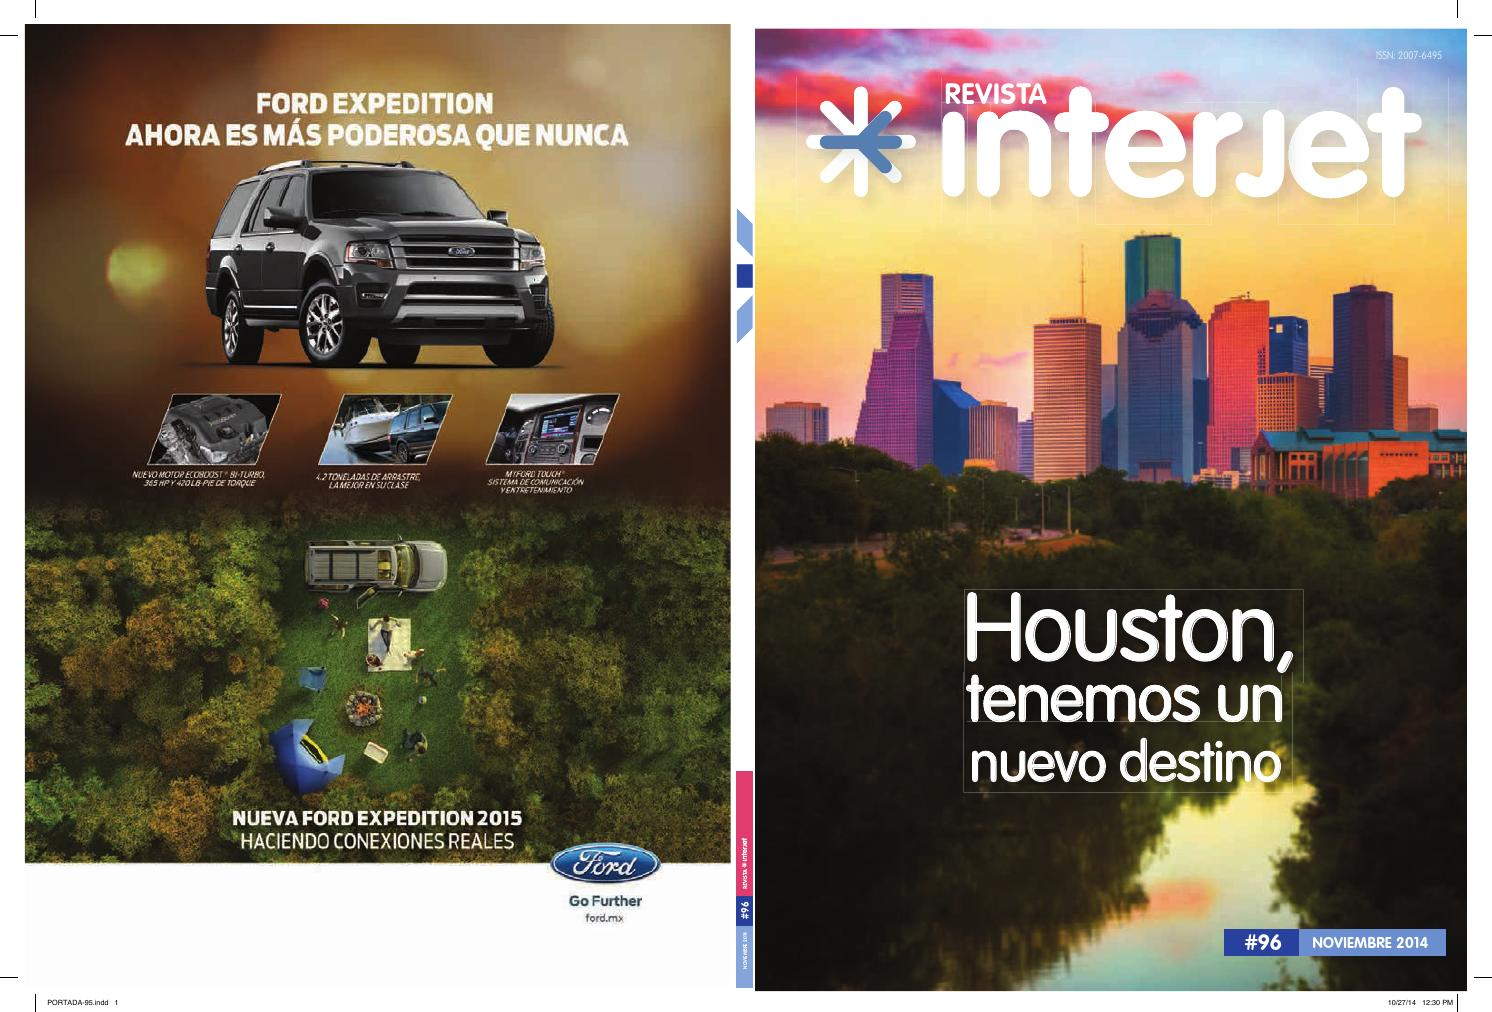 Revista interjet noviembre 2014 by Interjet - issuu 93e948f3d65